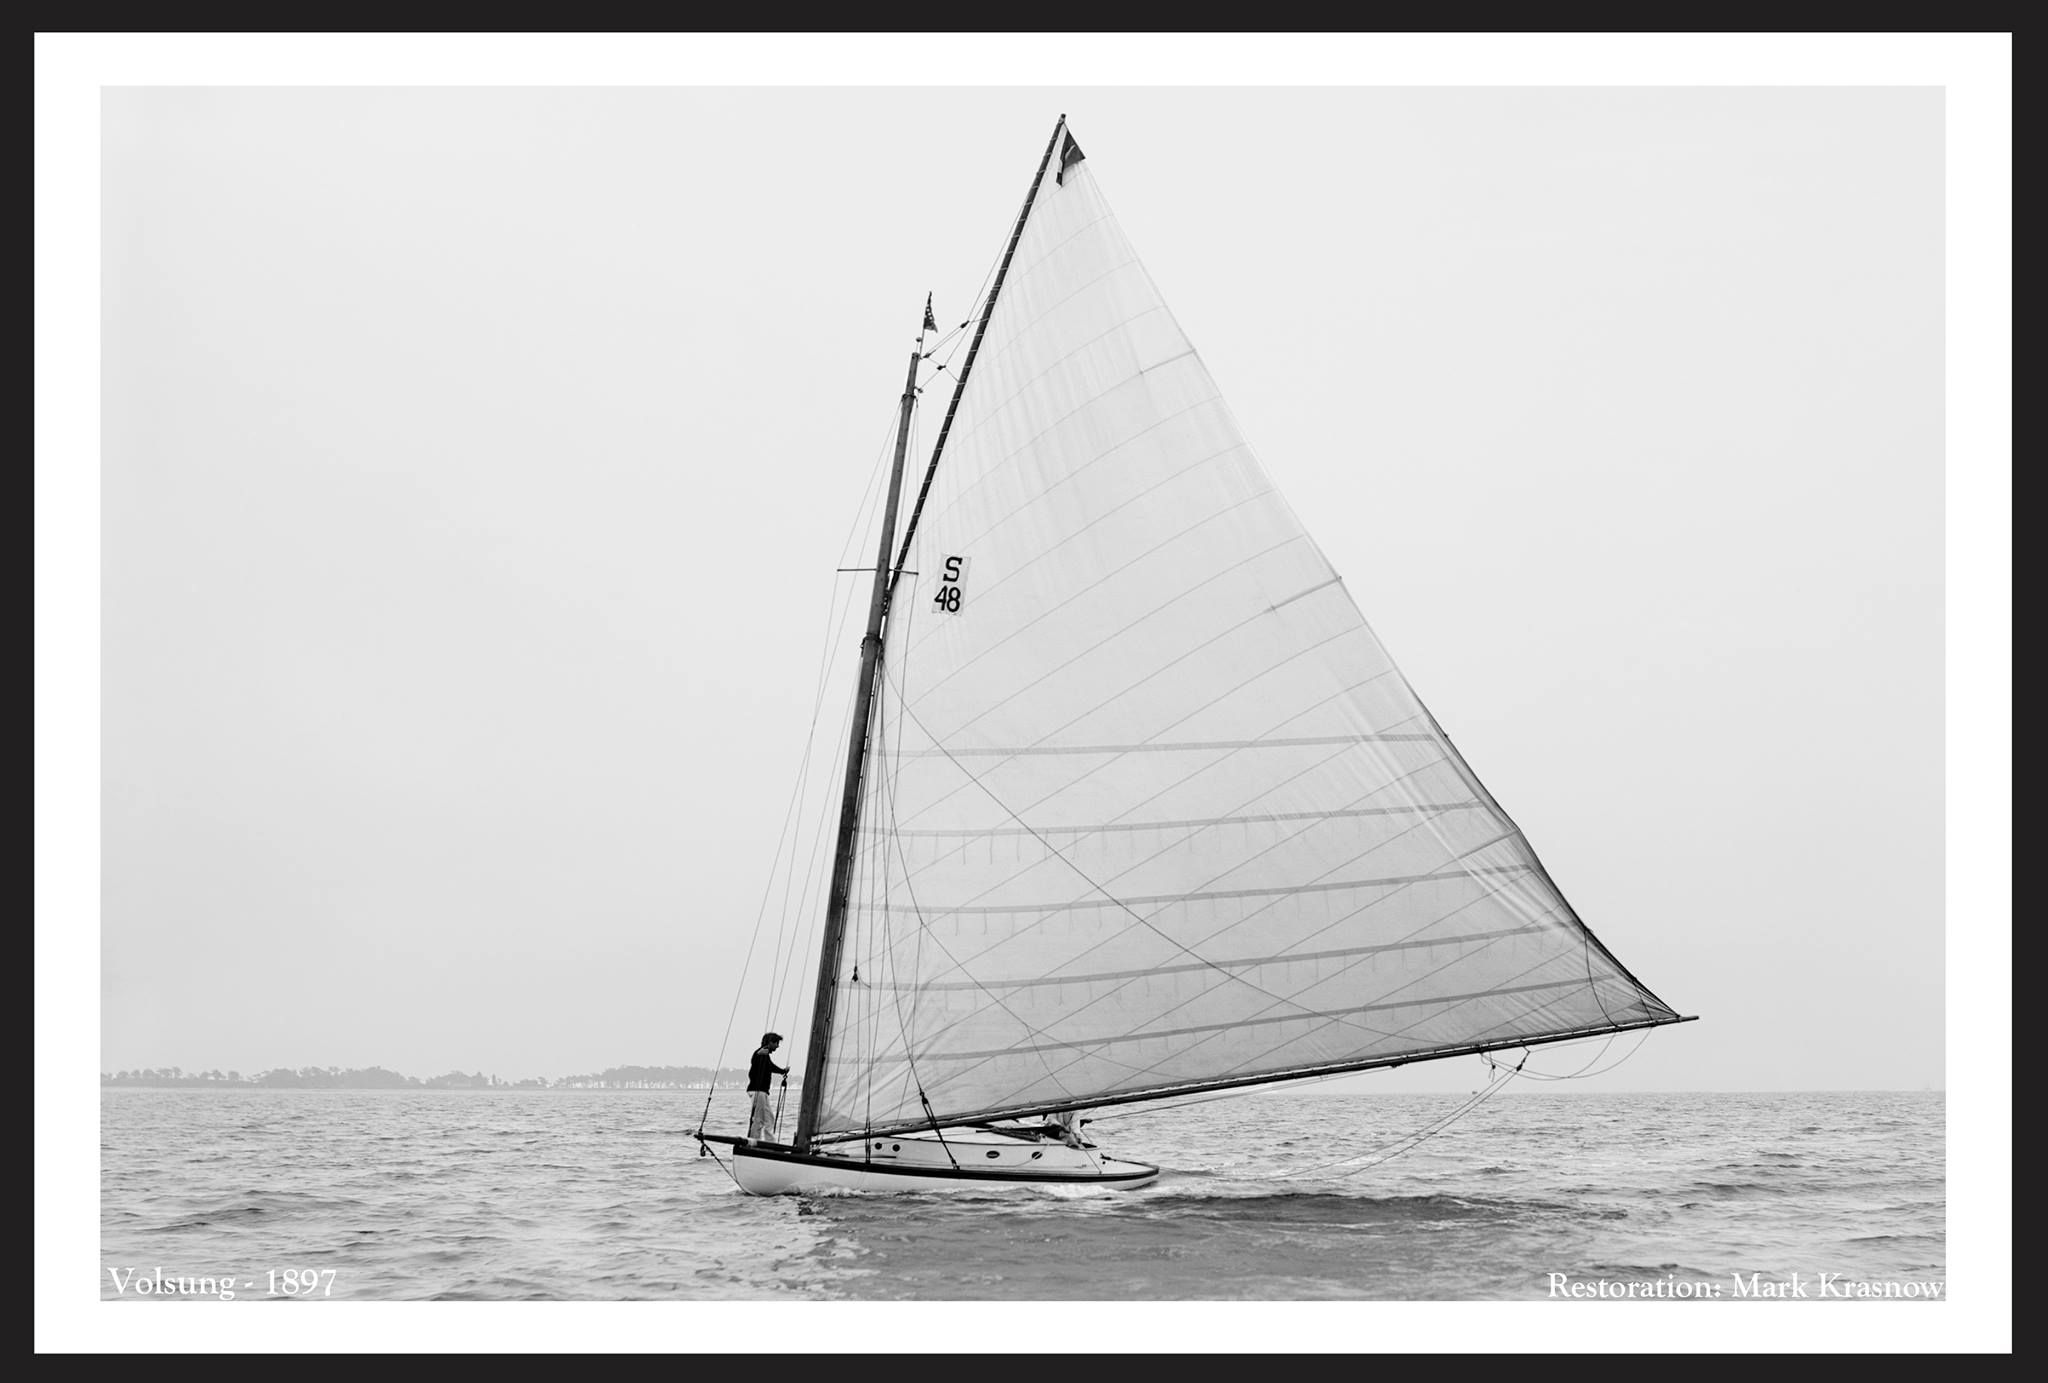 Vintage Sailing...Volsung - 1897 Cat - Length: 32 Beam: 13 Draft: 1 Designed by CC Hanley Built in Quincy, MA - 1896 Owned by J & HL DeForest Port of NY. Restration by Mark Krasnow